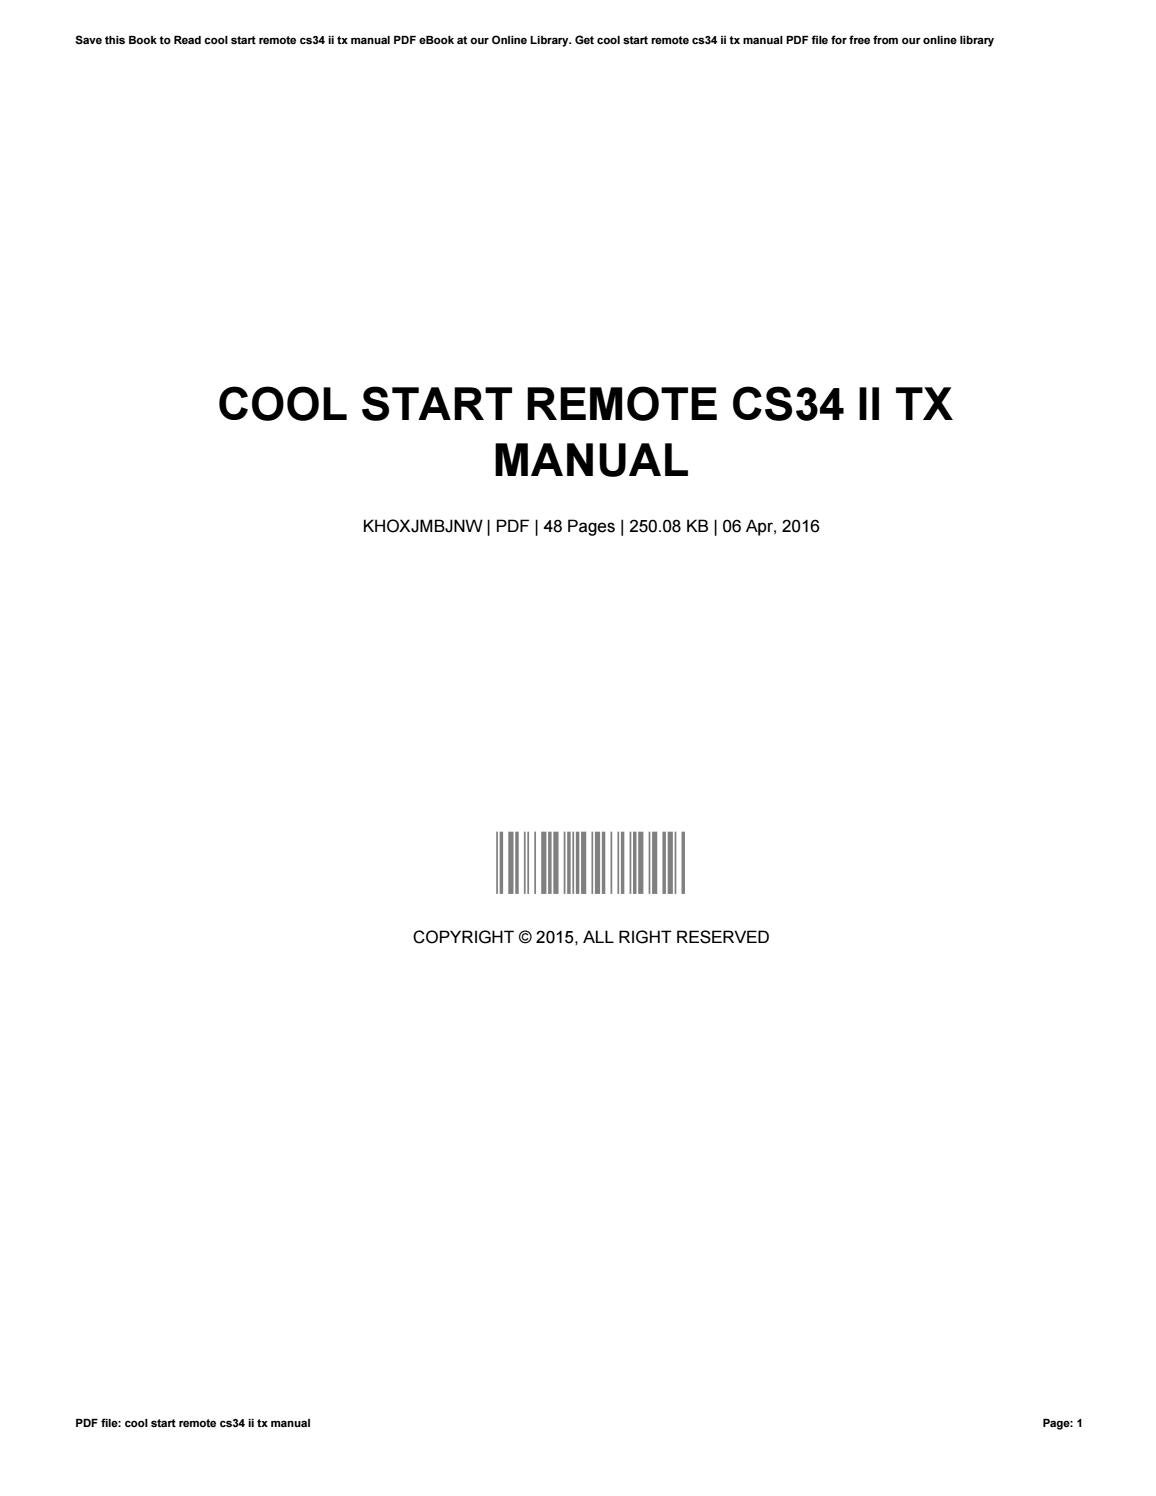 cool start cs34 ii tx manual